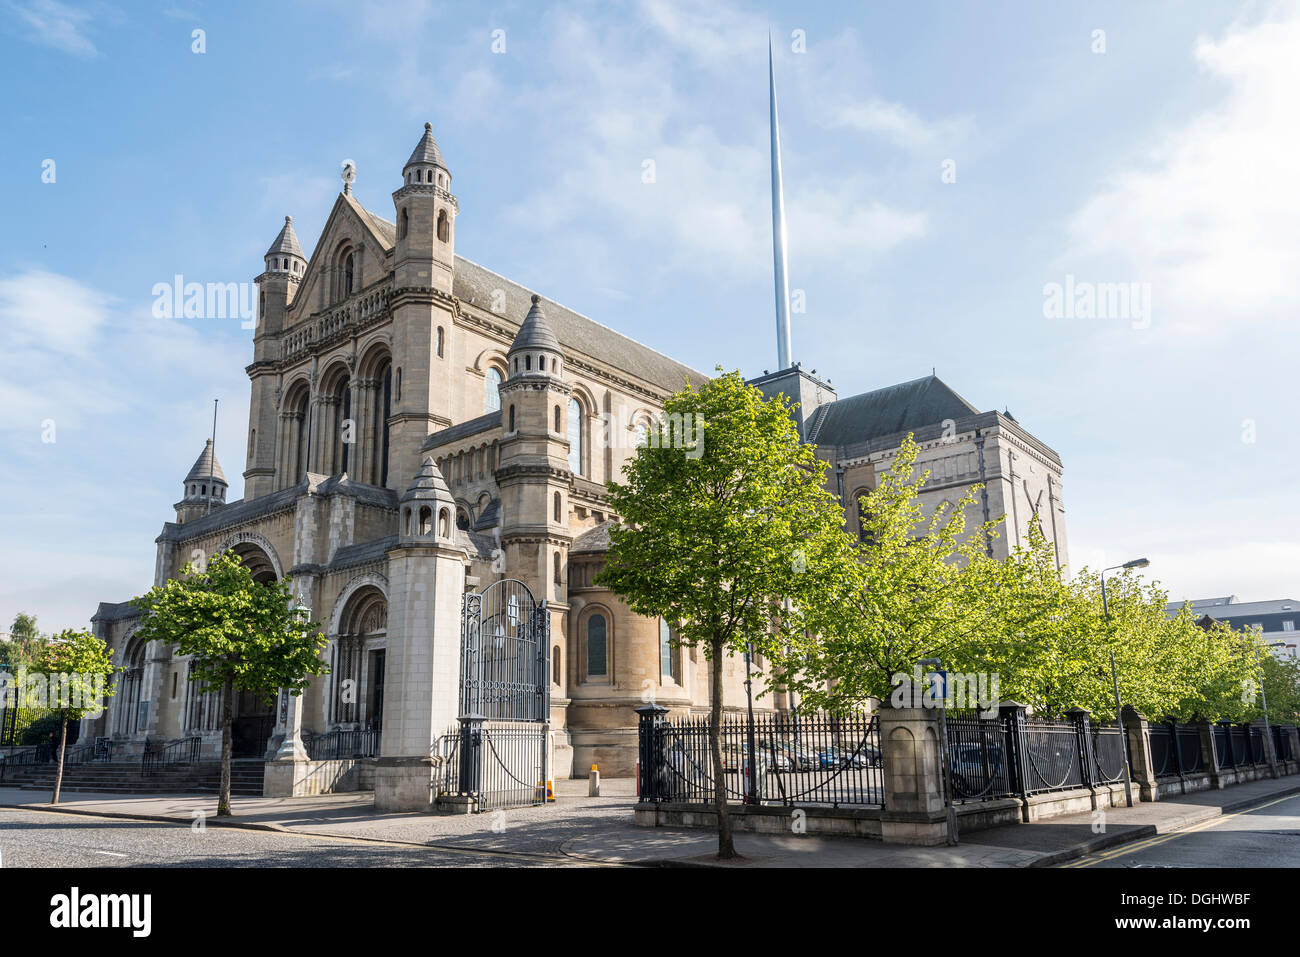 St. Anne's Cathedral, Belfast, Northern Ireland, United Kingdom, Europe - Stock Image